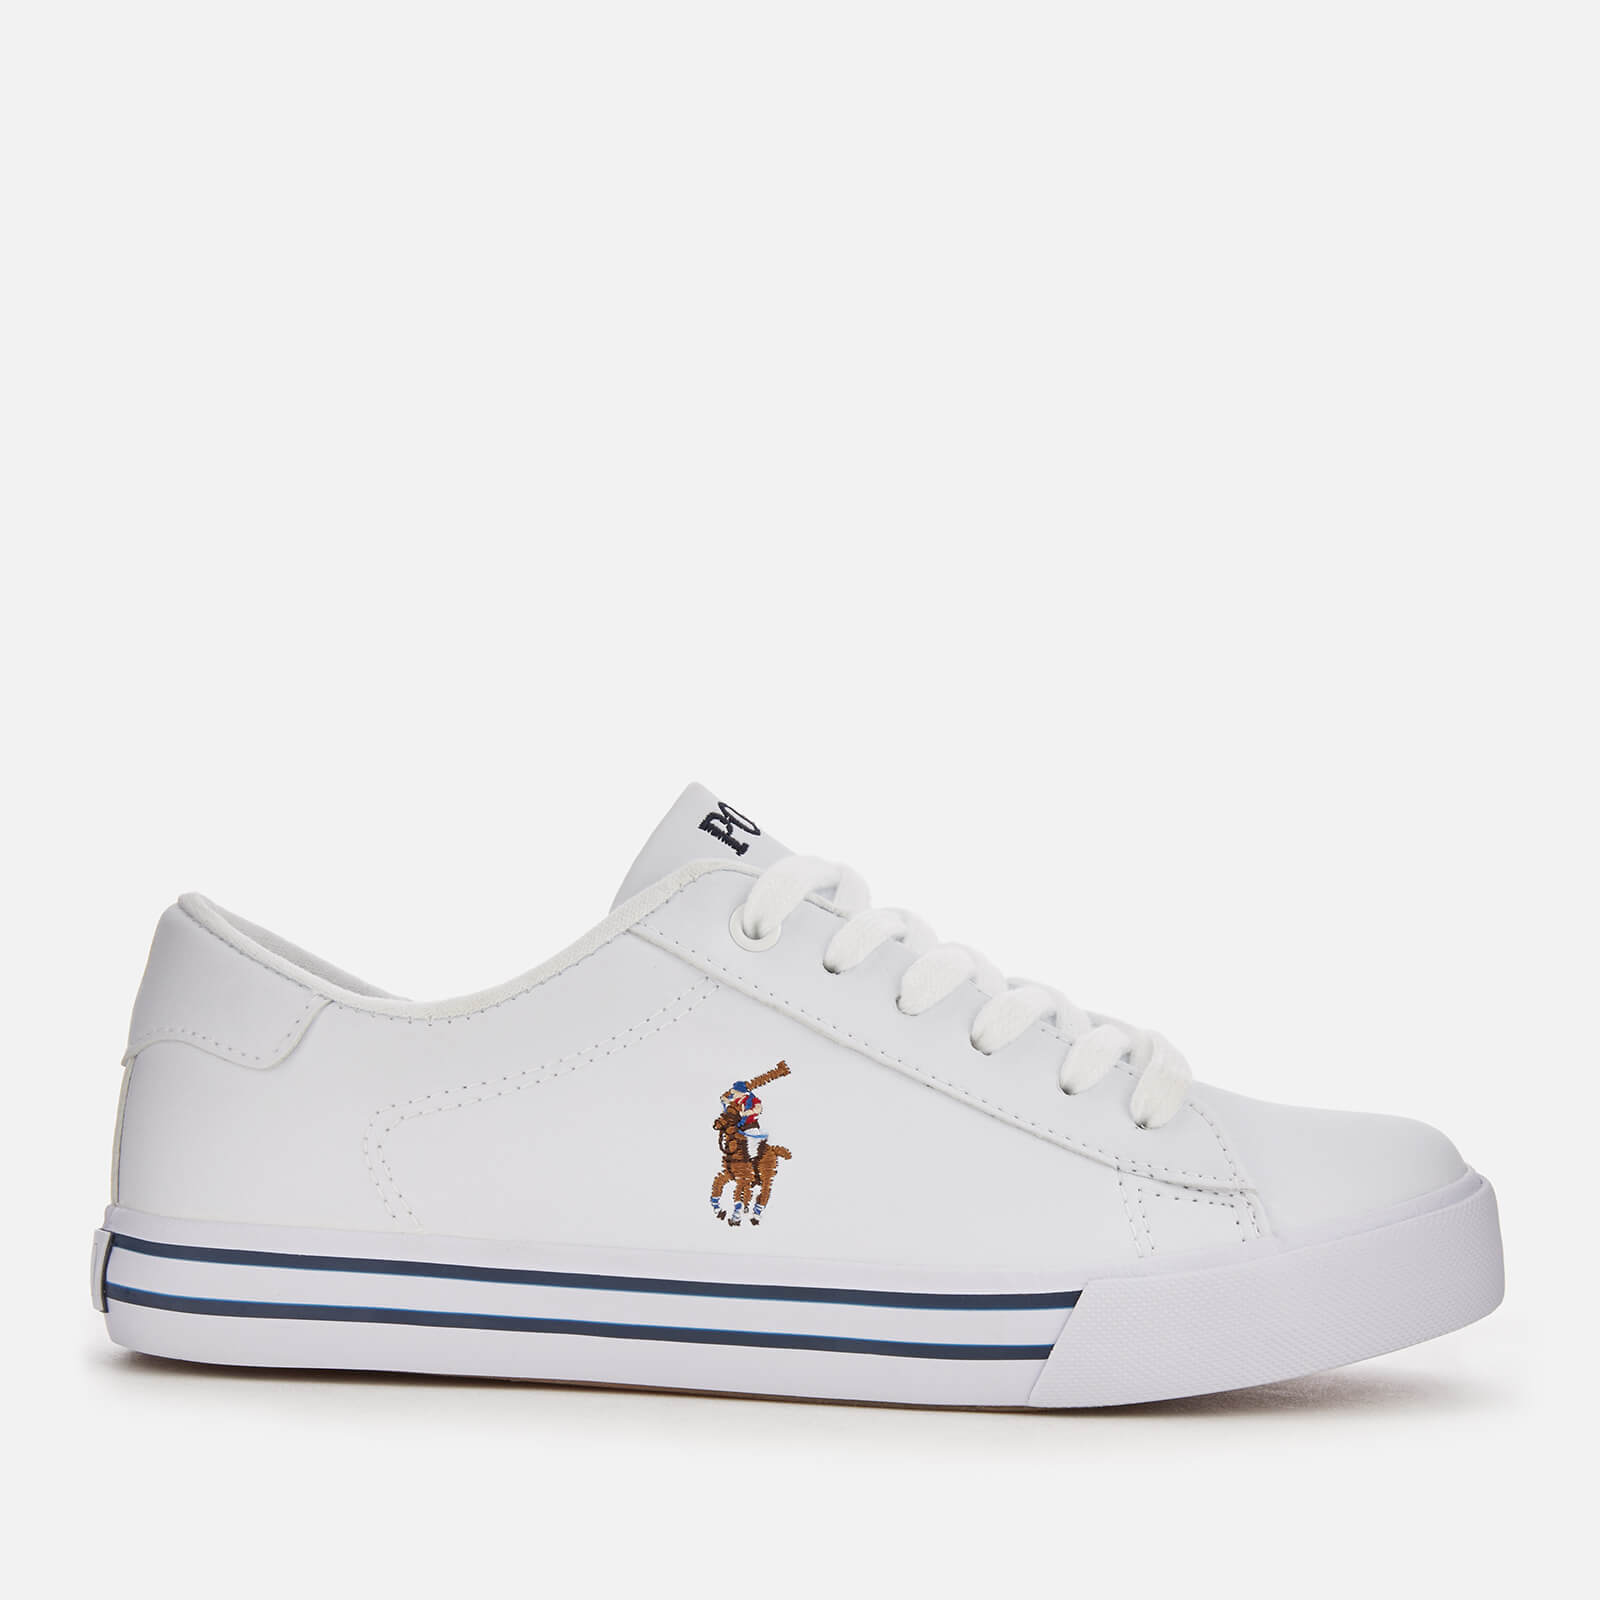 Ralph Leather Kids' Whitemulti Easten Trainers Lauren Polo Tumbled rtBsCQhdx